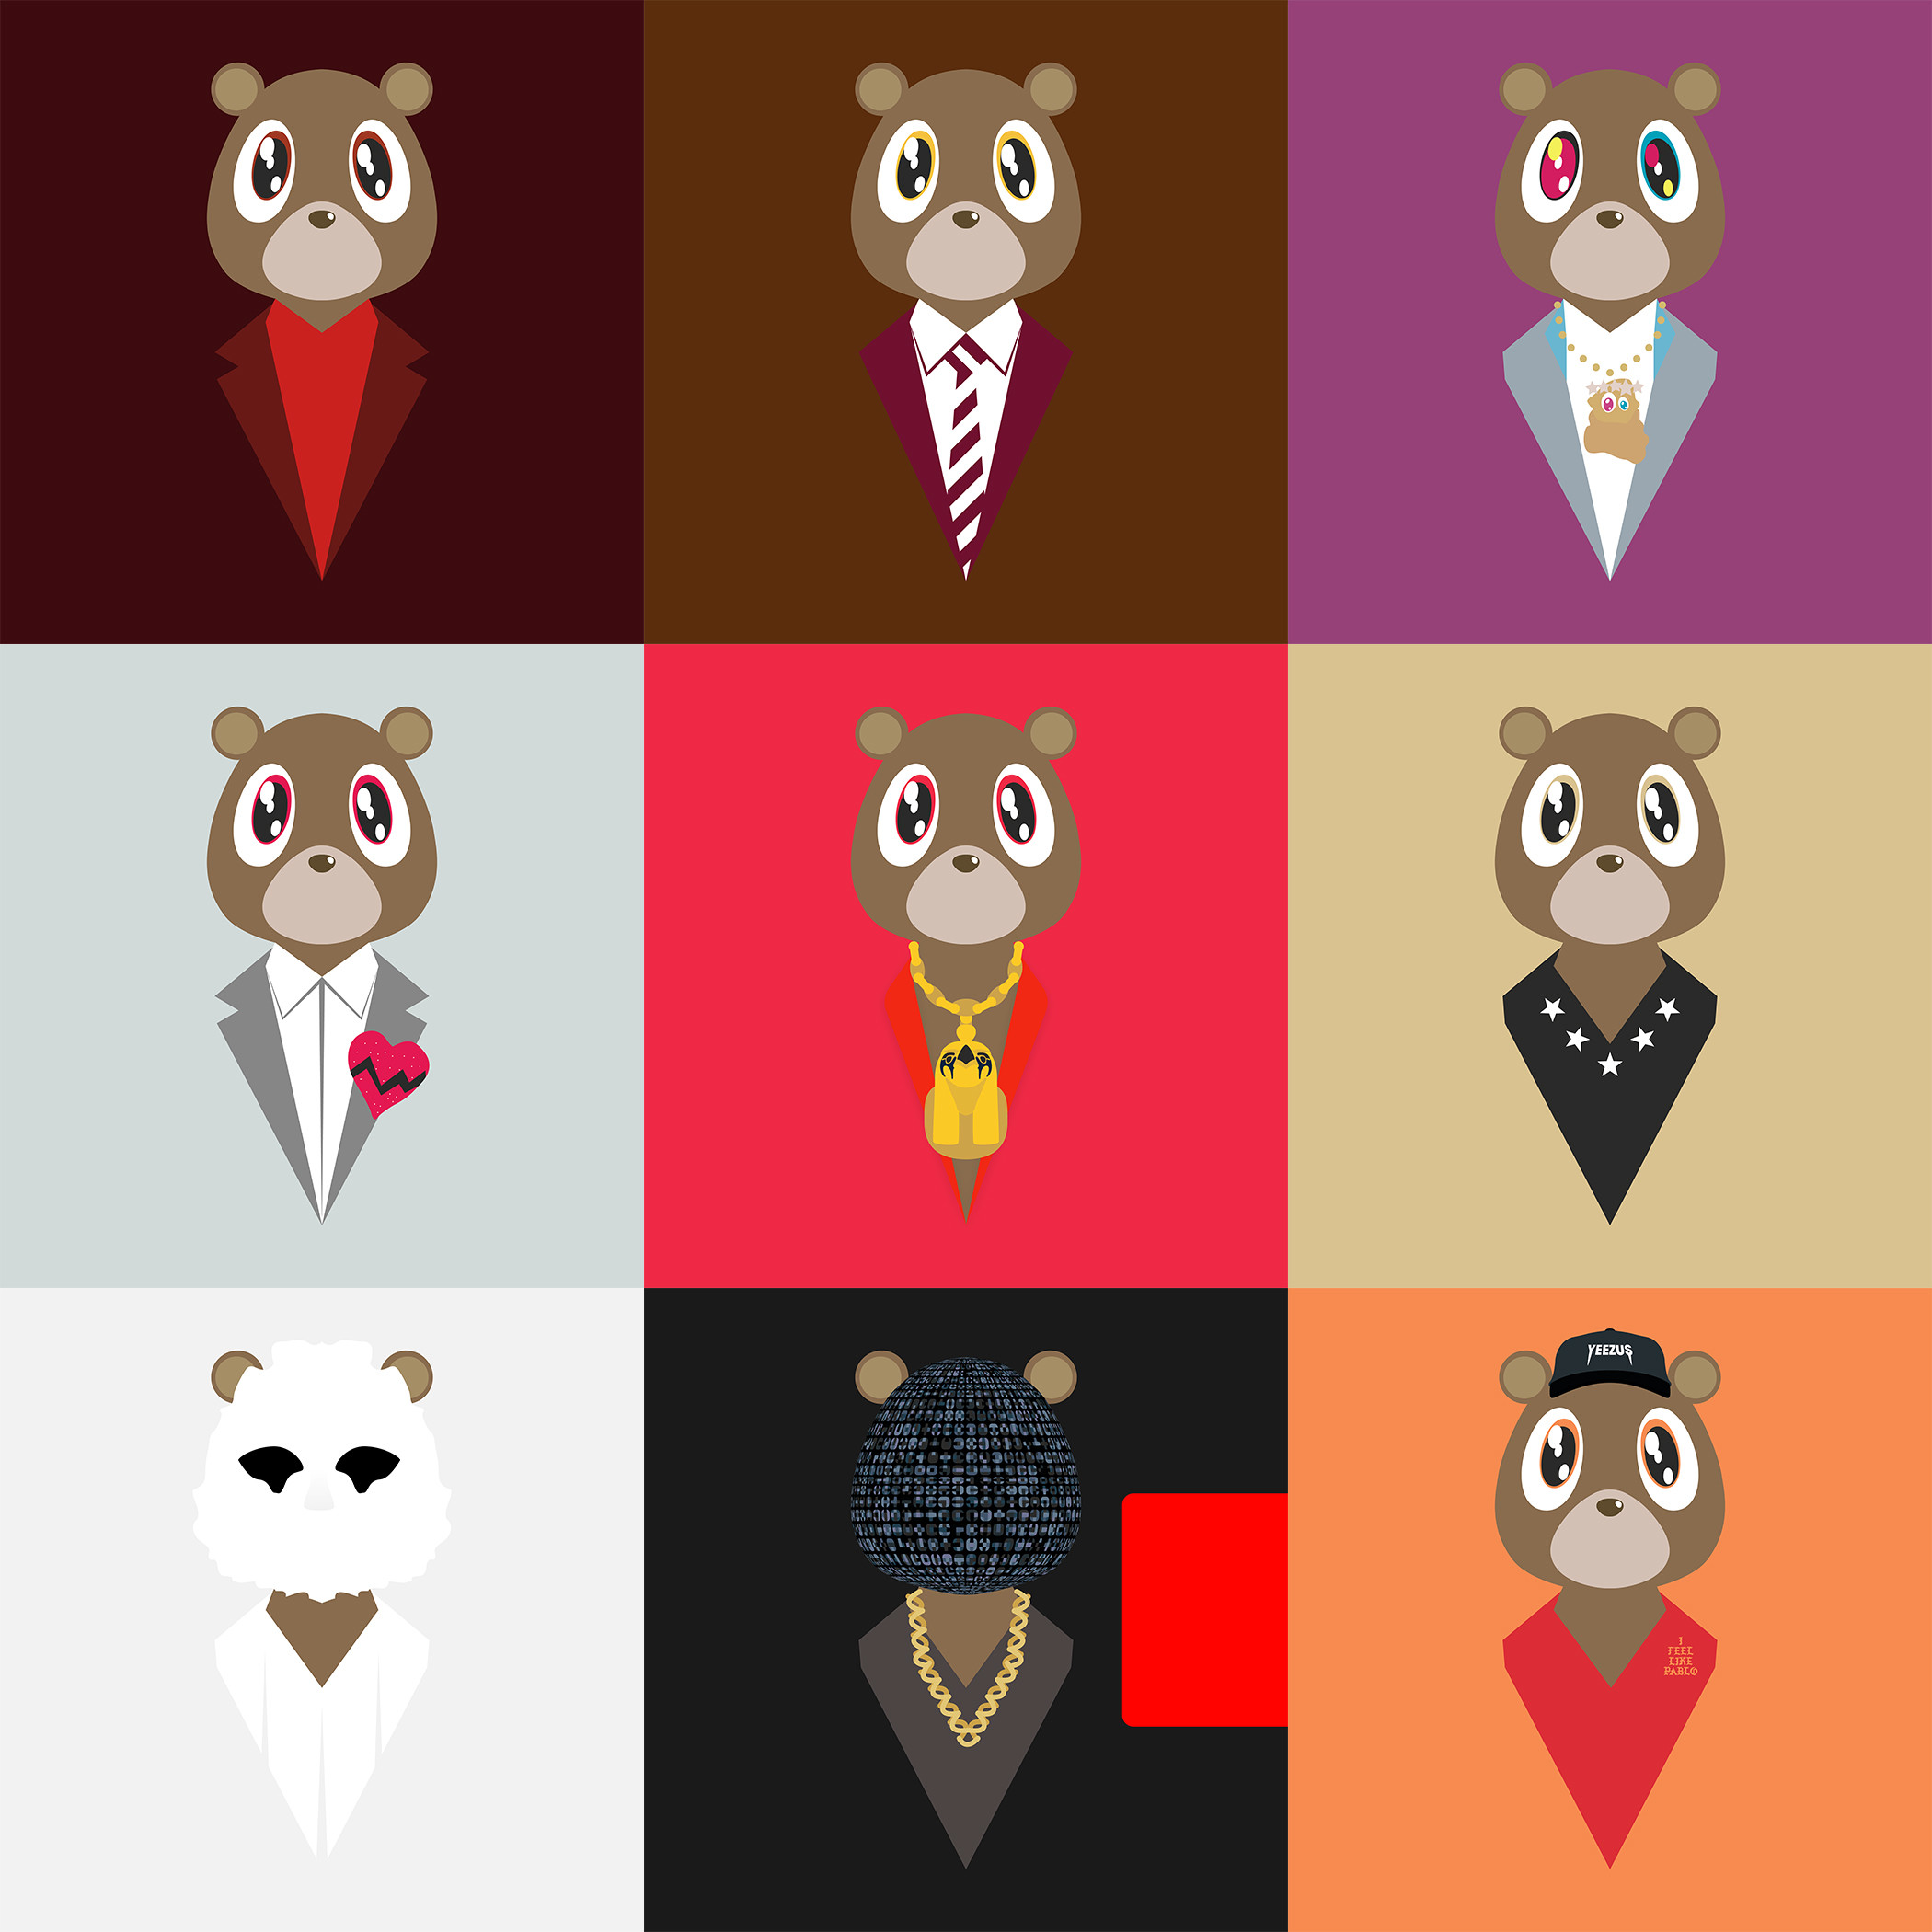 2100x2100 Degausser's Dropout Bears + Other (Finally Updated) Â« Kanye West Forum